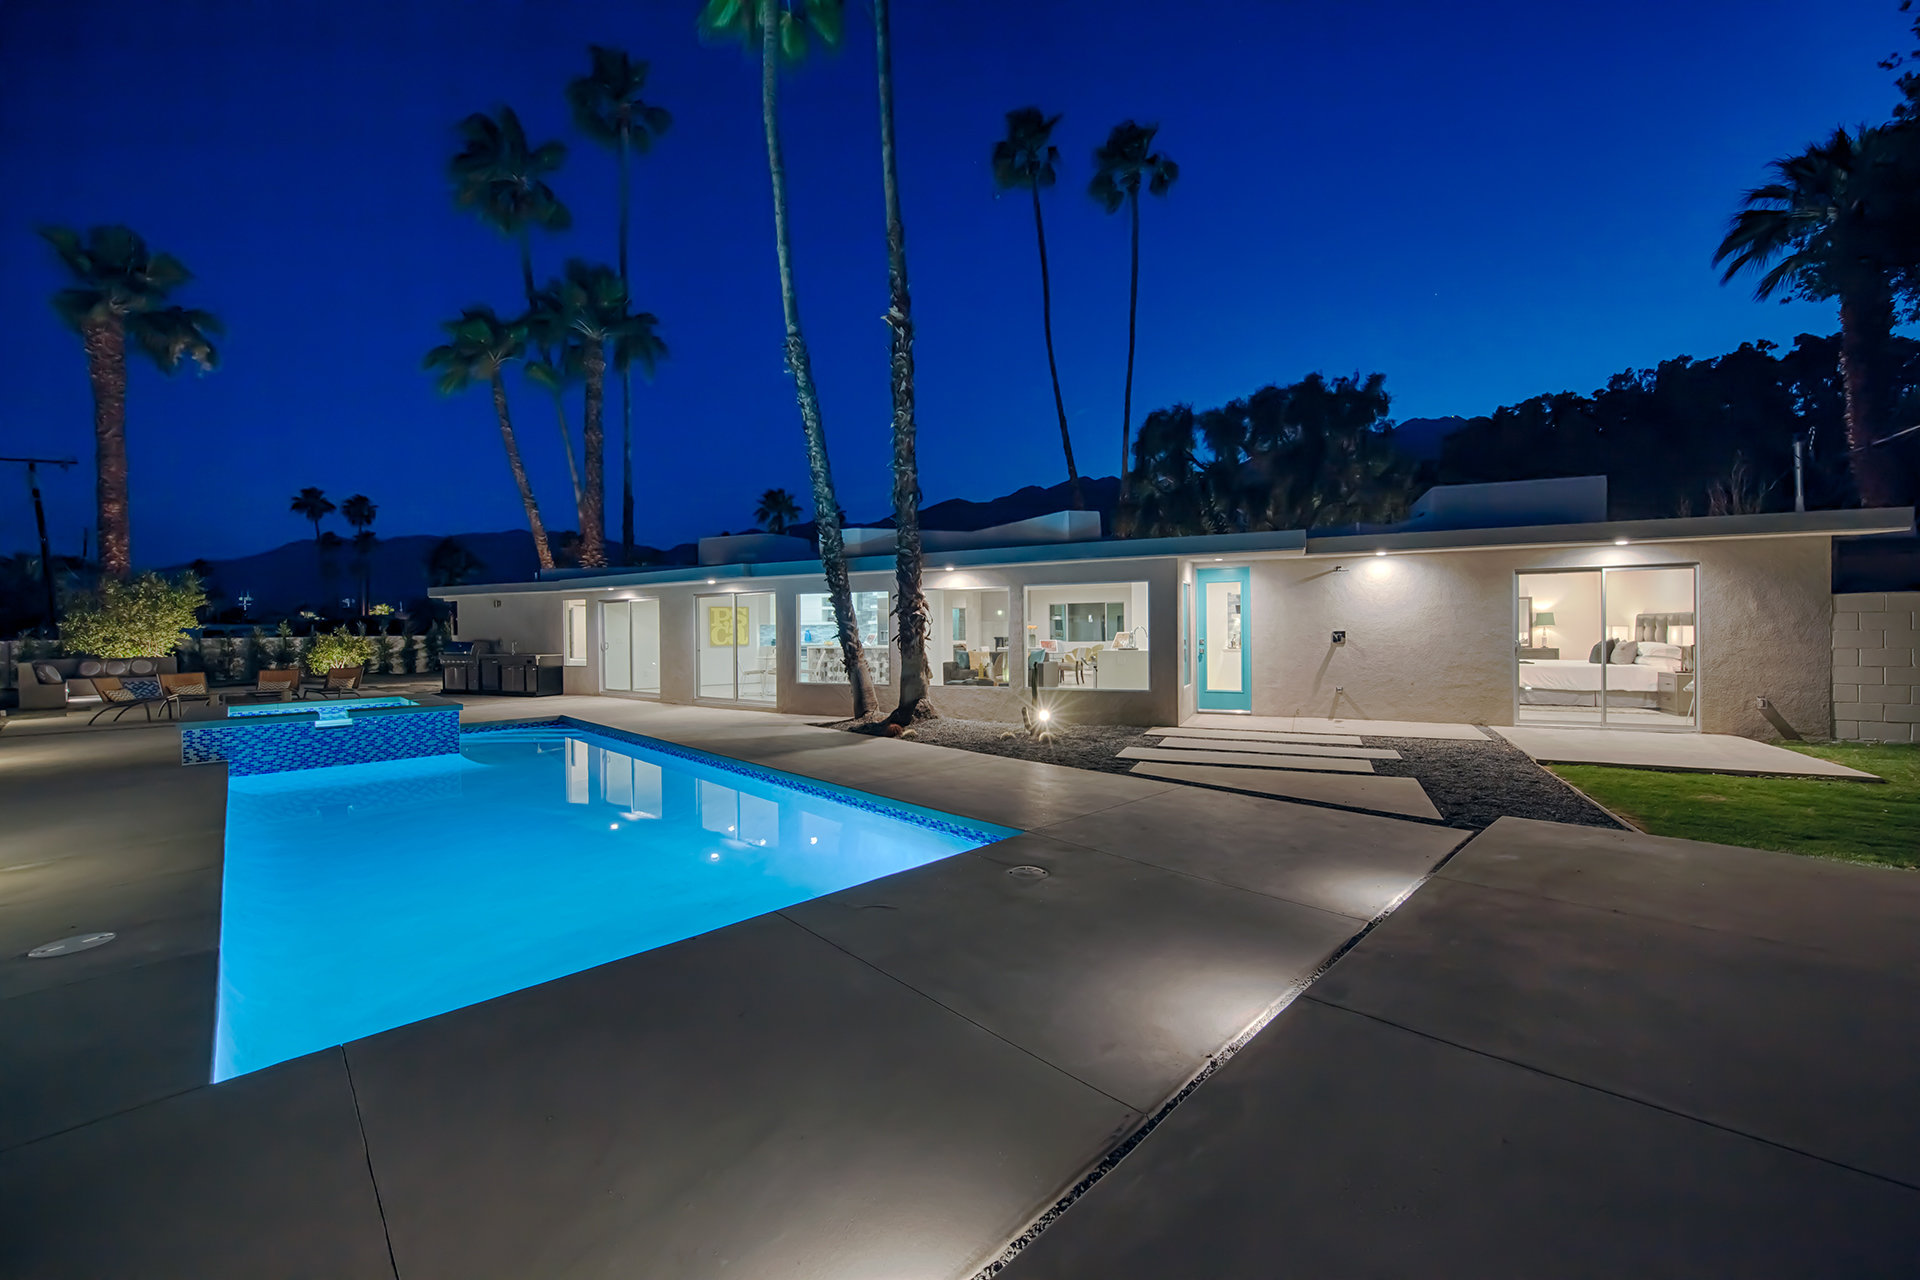 A mid-century home with pool in the Sunrise Park neighborhood of Palm Springs, California